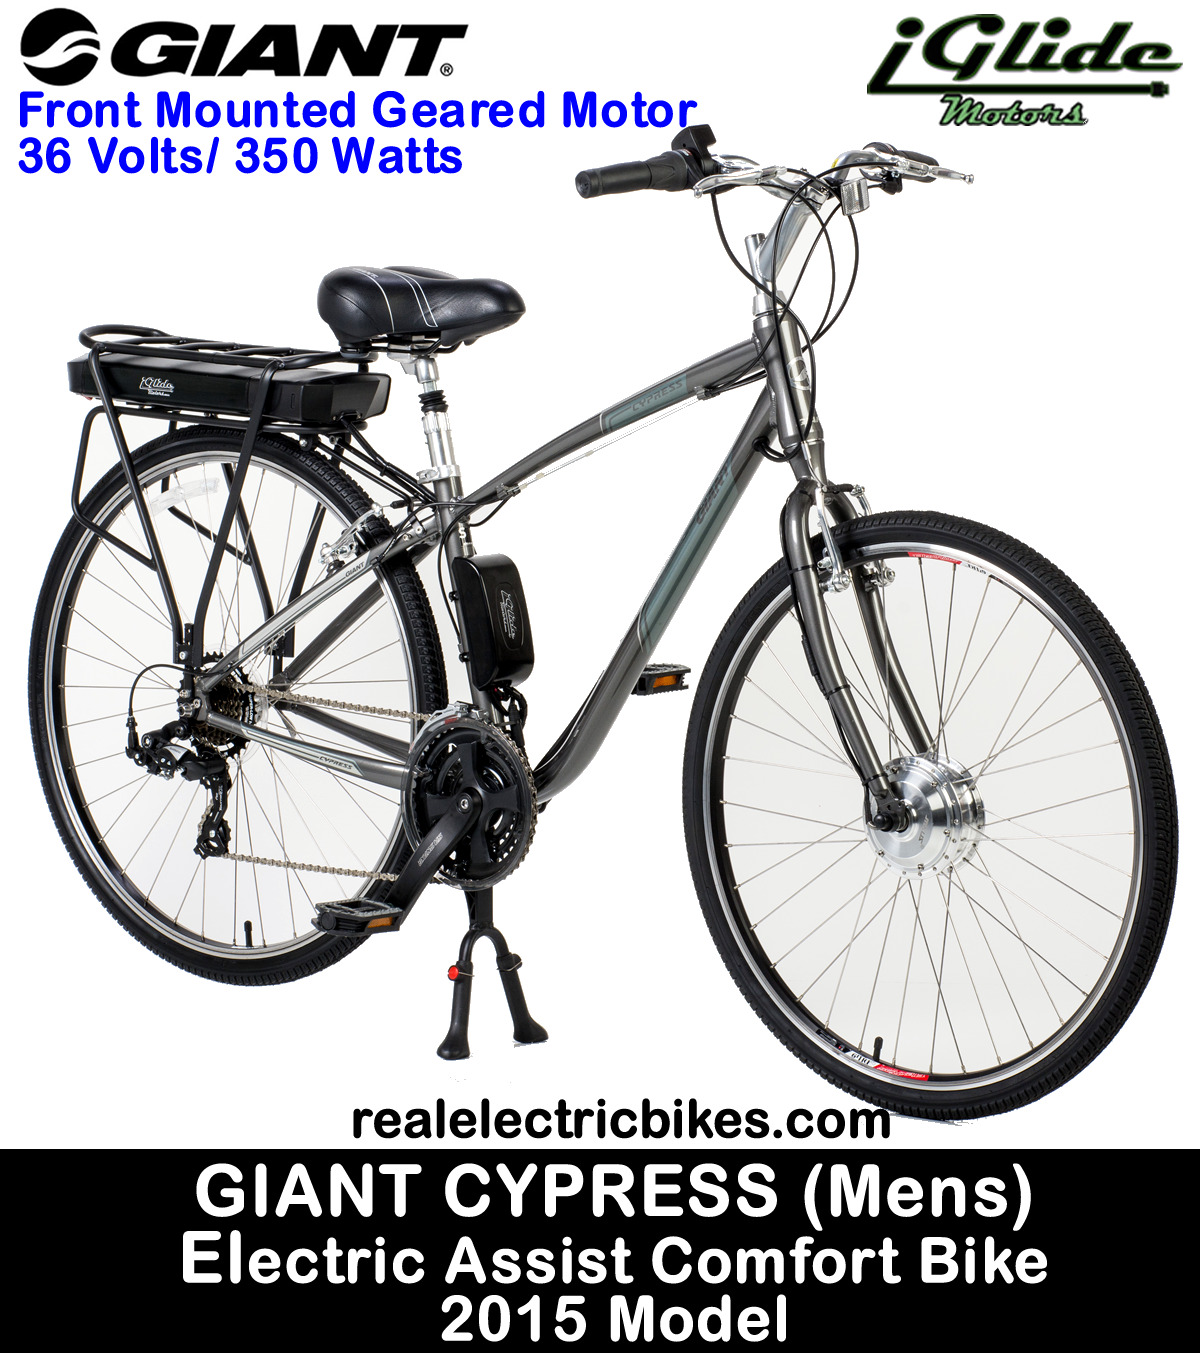 Giant Cypress Size Large electric assist comfort city bike/ commuter ...